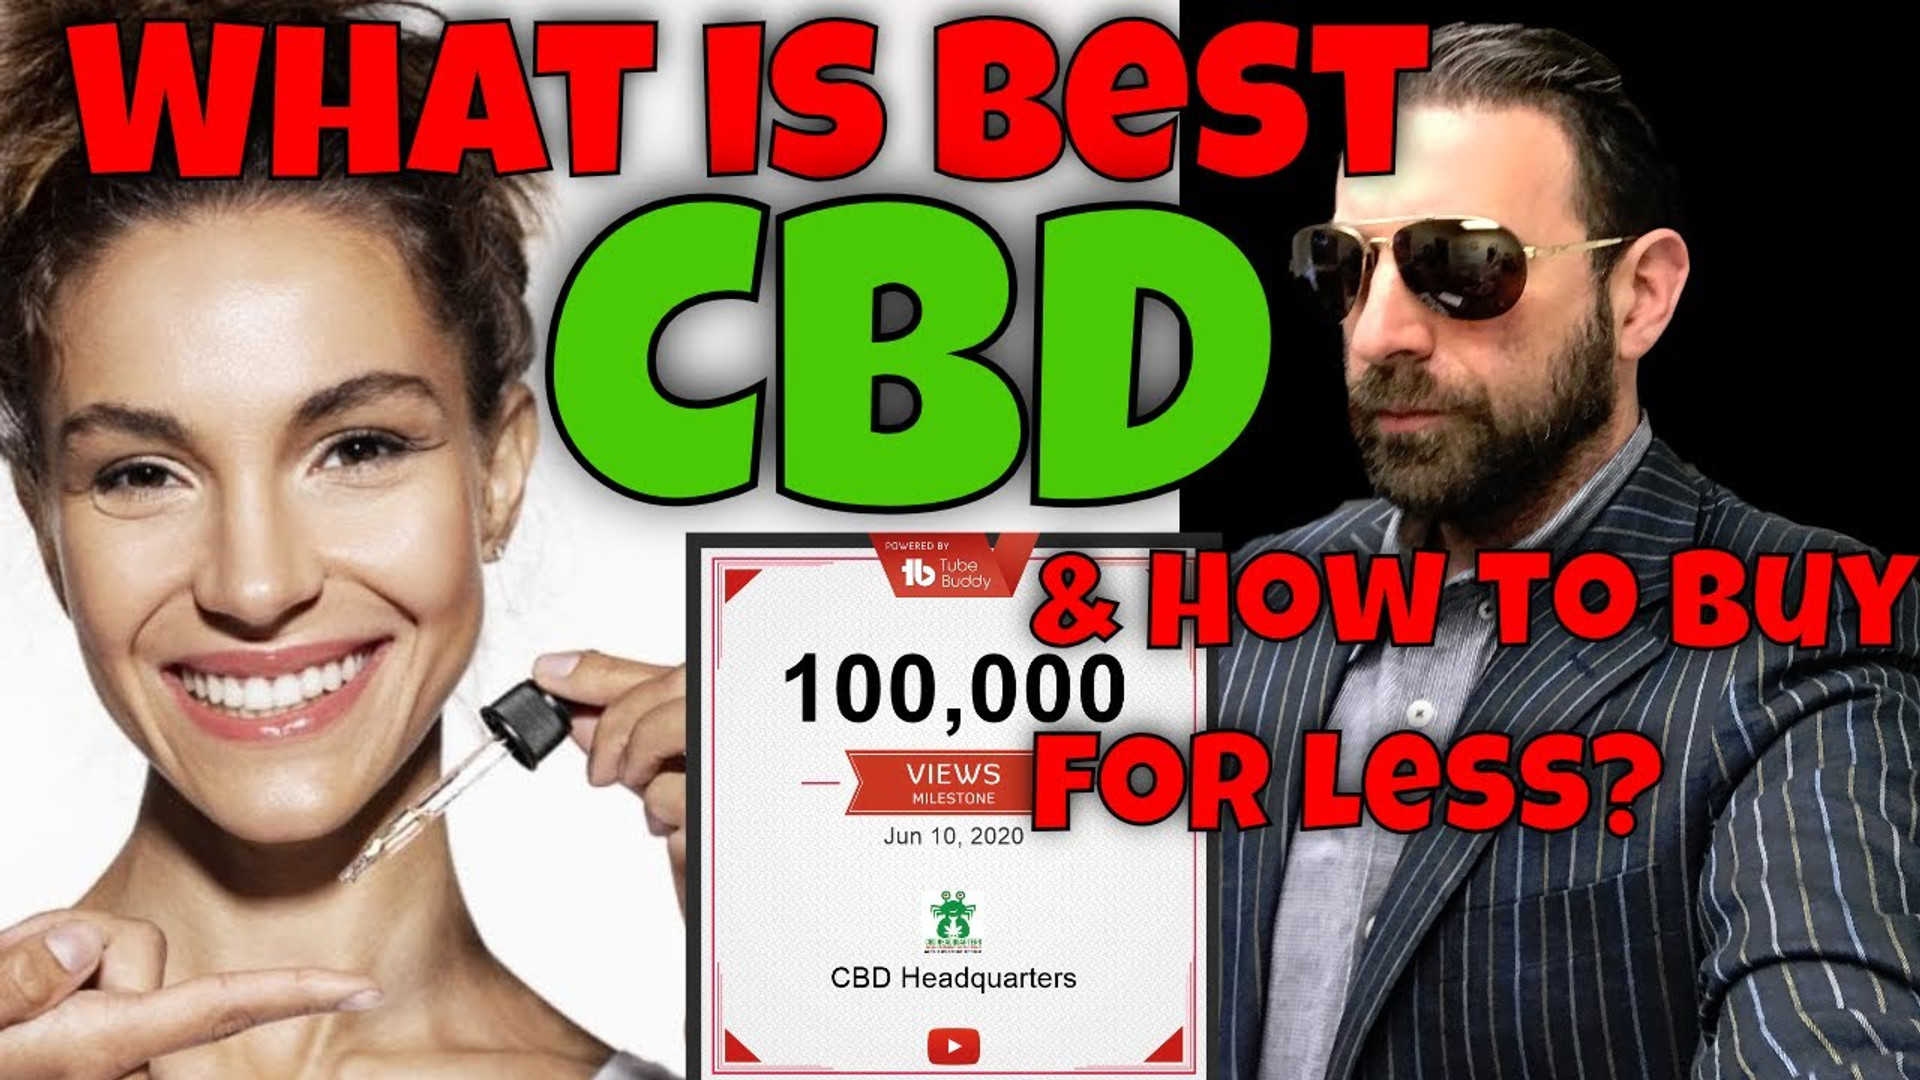 What Is Best CBD?